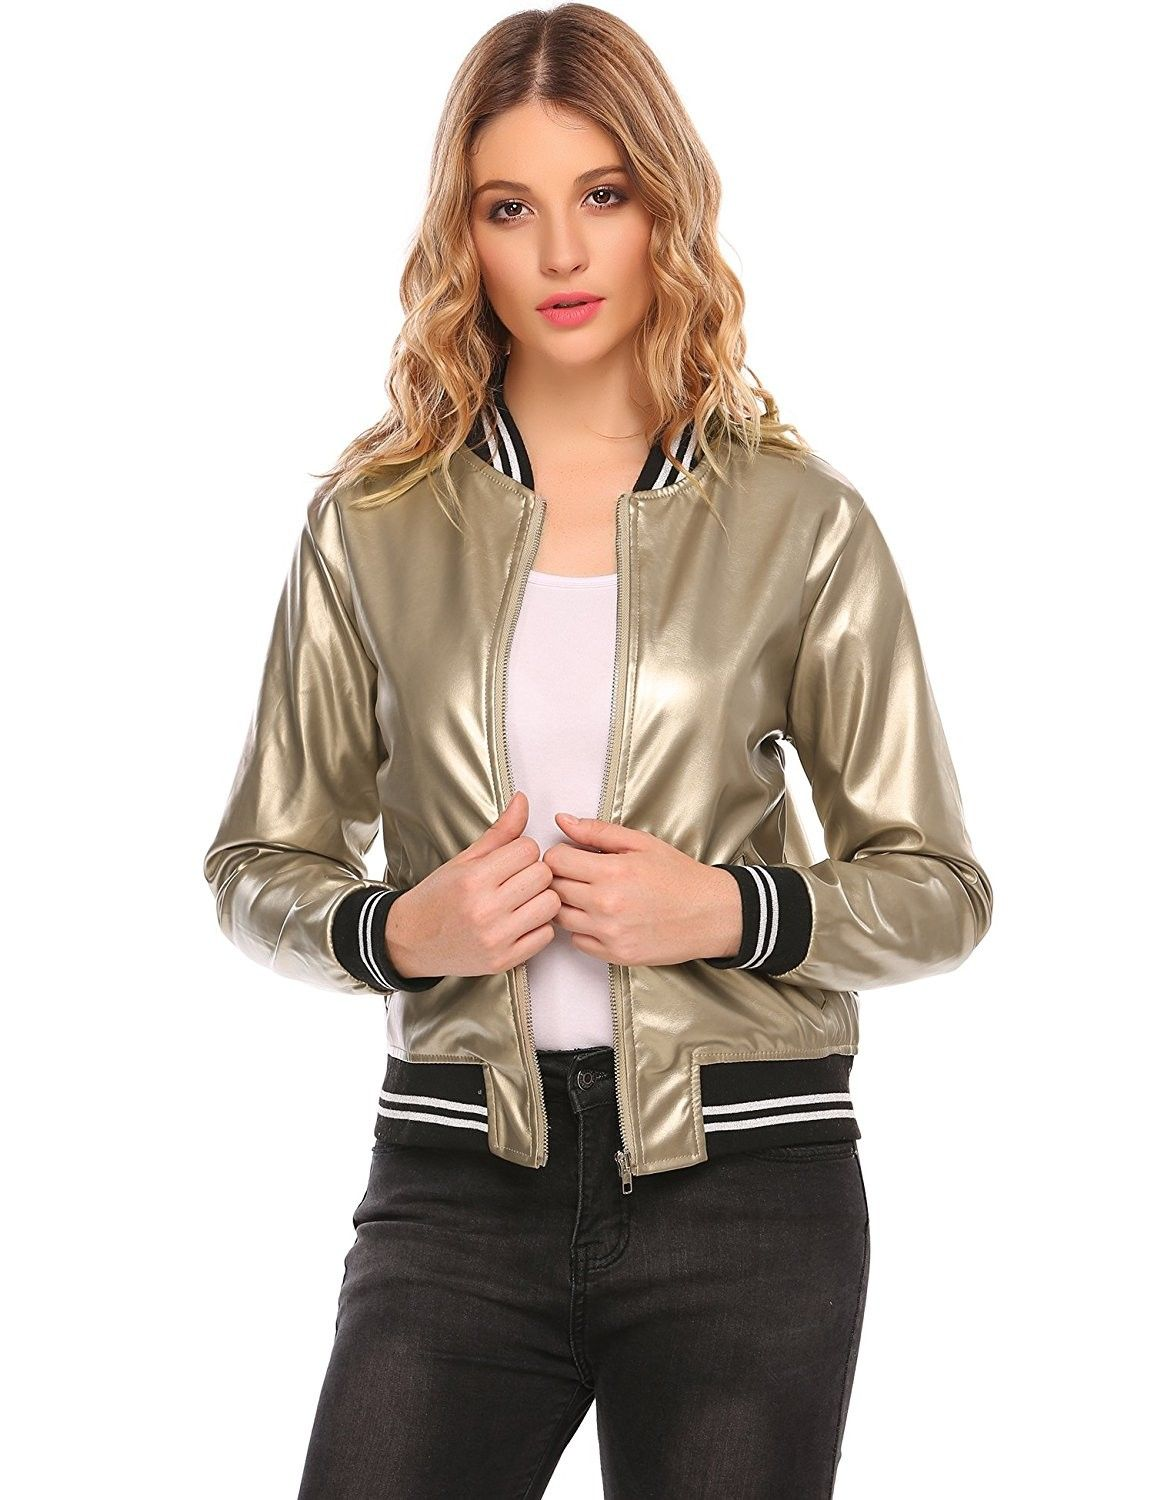 Women's Faux Leather Short Baseball Bomber Jacket Coat